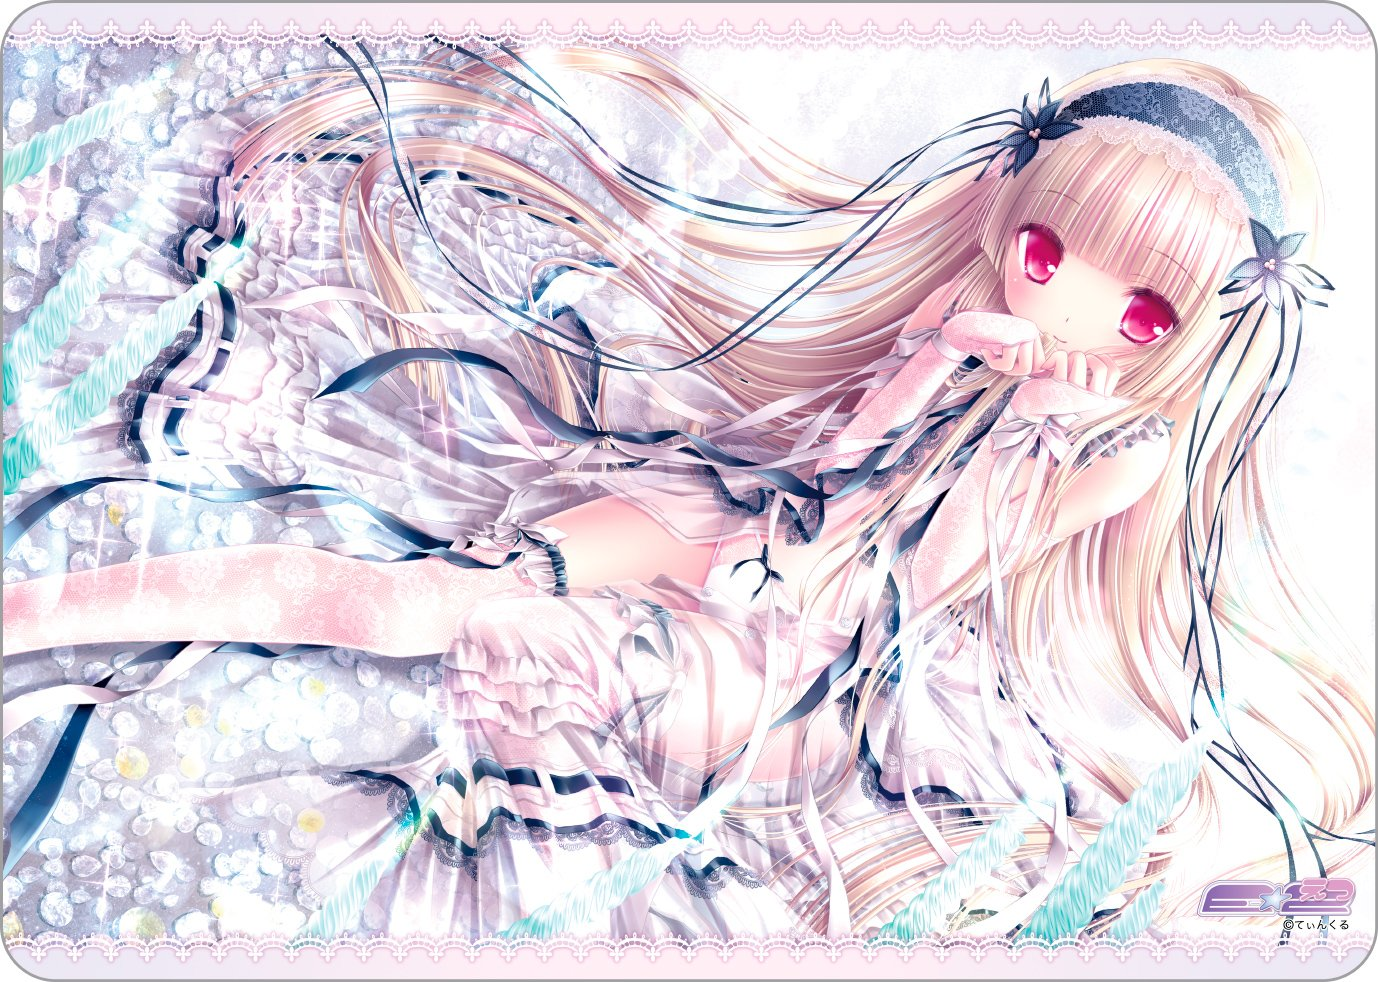 E-tsu Twinkle Bianco Loto Universal Trading Card Playmat Play Mat Collection